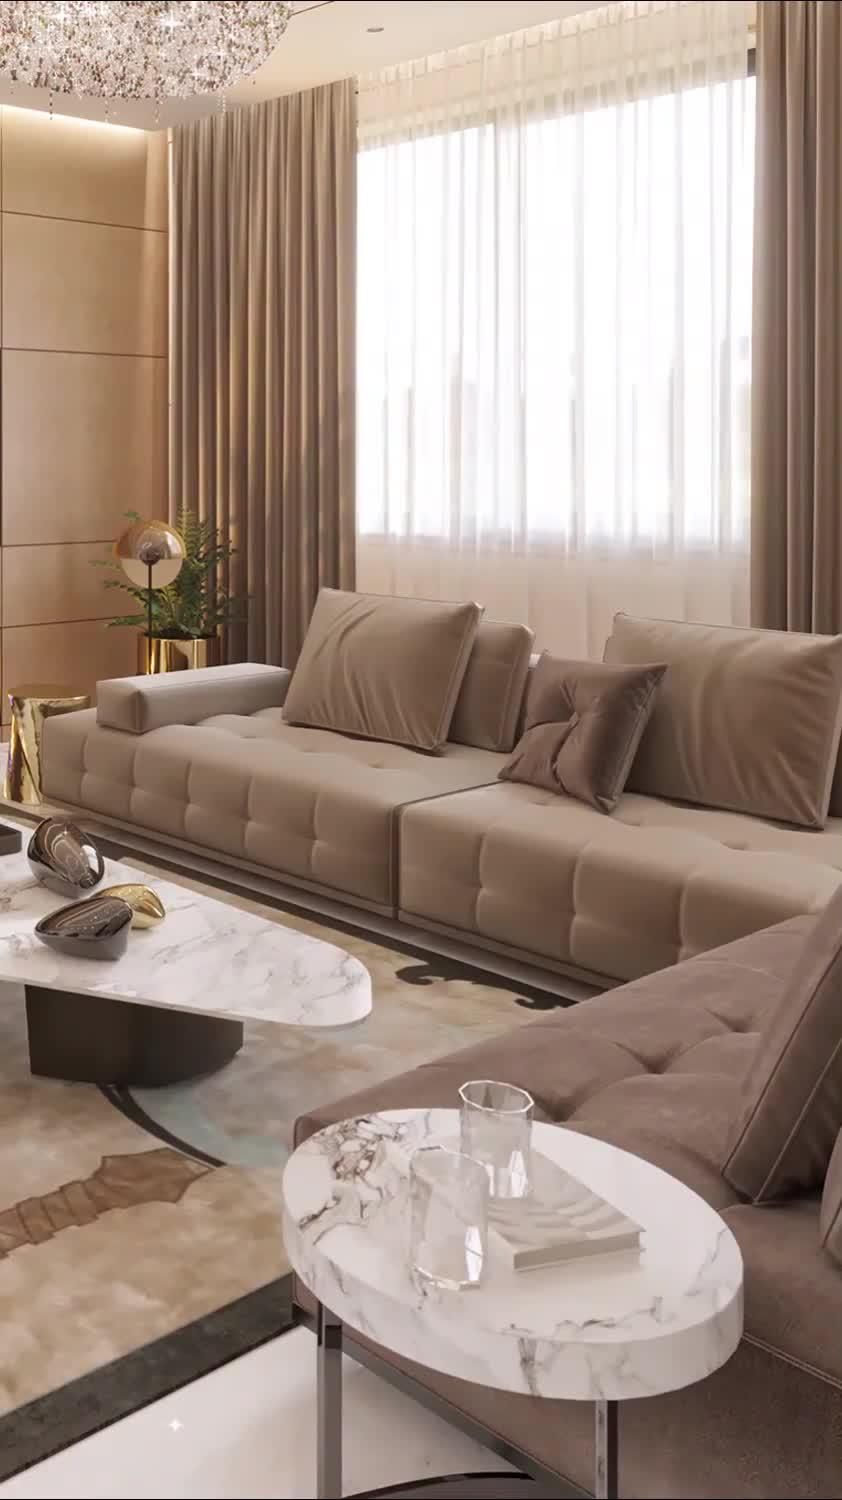 Luxury modern home living room interior décor for your dream house